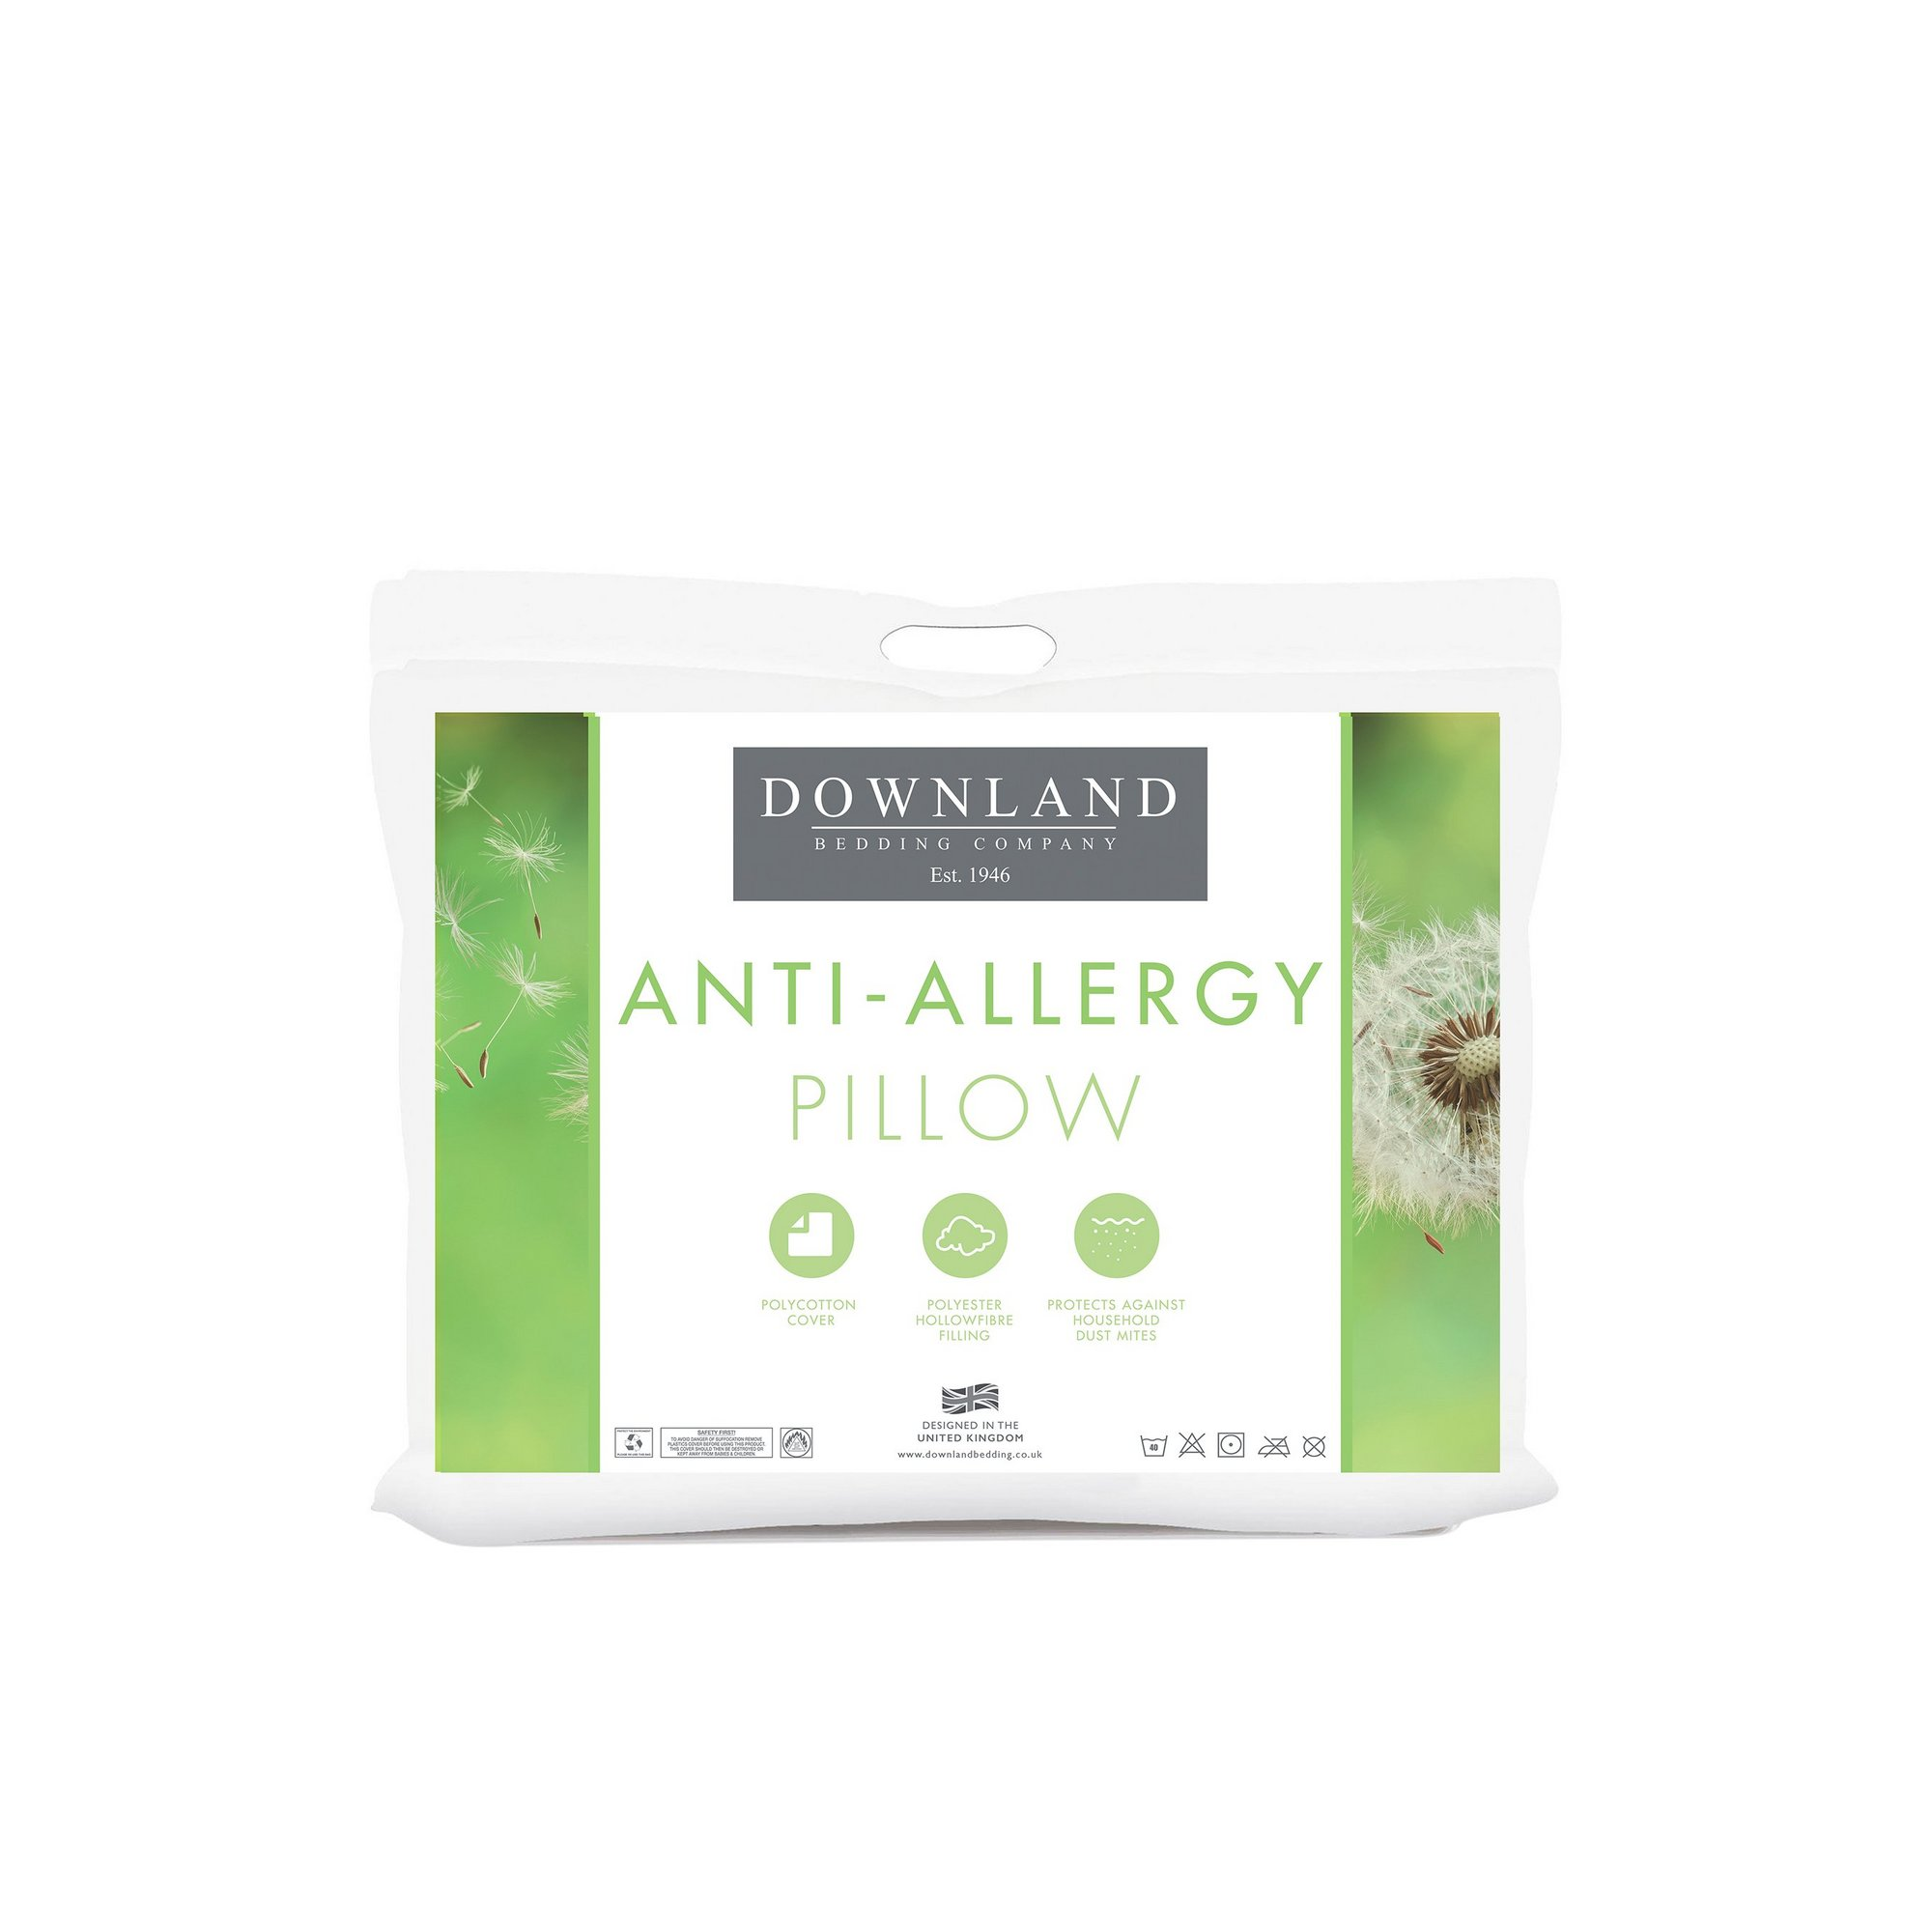 Image of Downland Anti-Allergy Hollowfibre Pillows